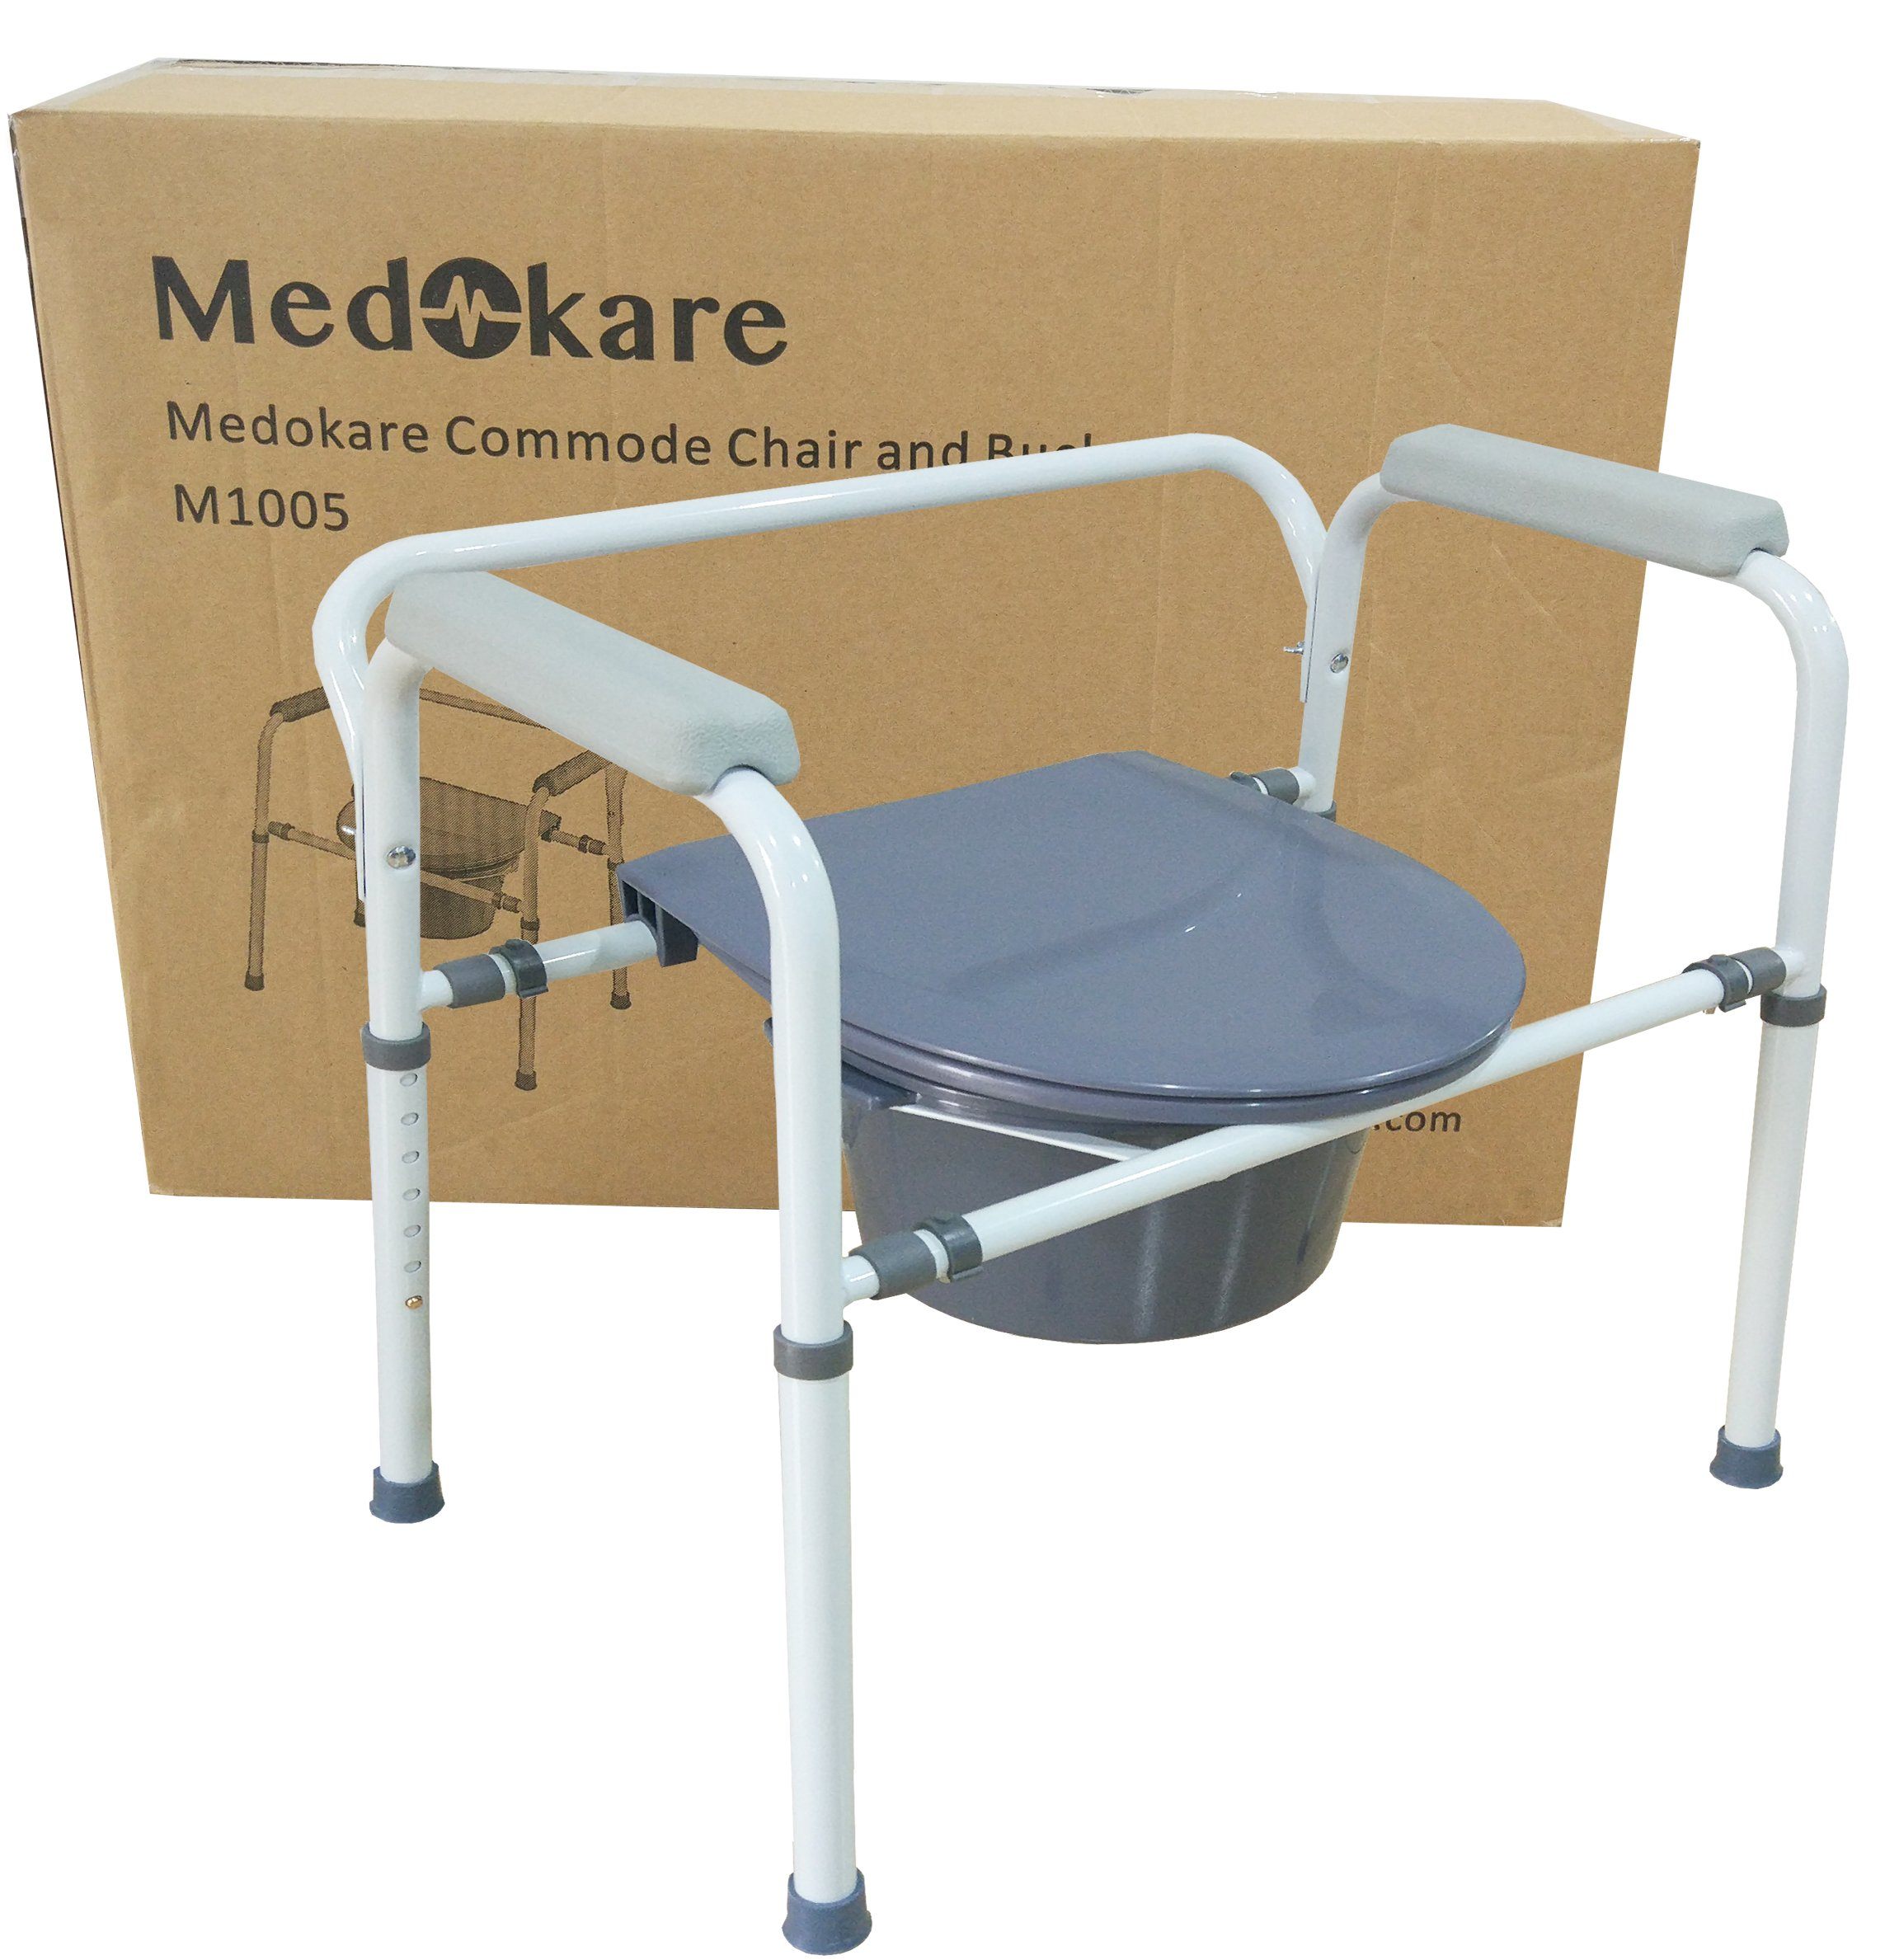 Medokare Bedside Commode Chair - Heavy-Duty Steel Commode Seat, Bedside Potty Chair for Adults, Medical Handicap Toilet Seat with Handles and Bucket by Medokare (Image #2)